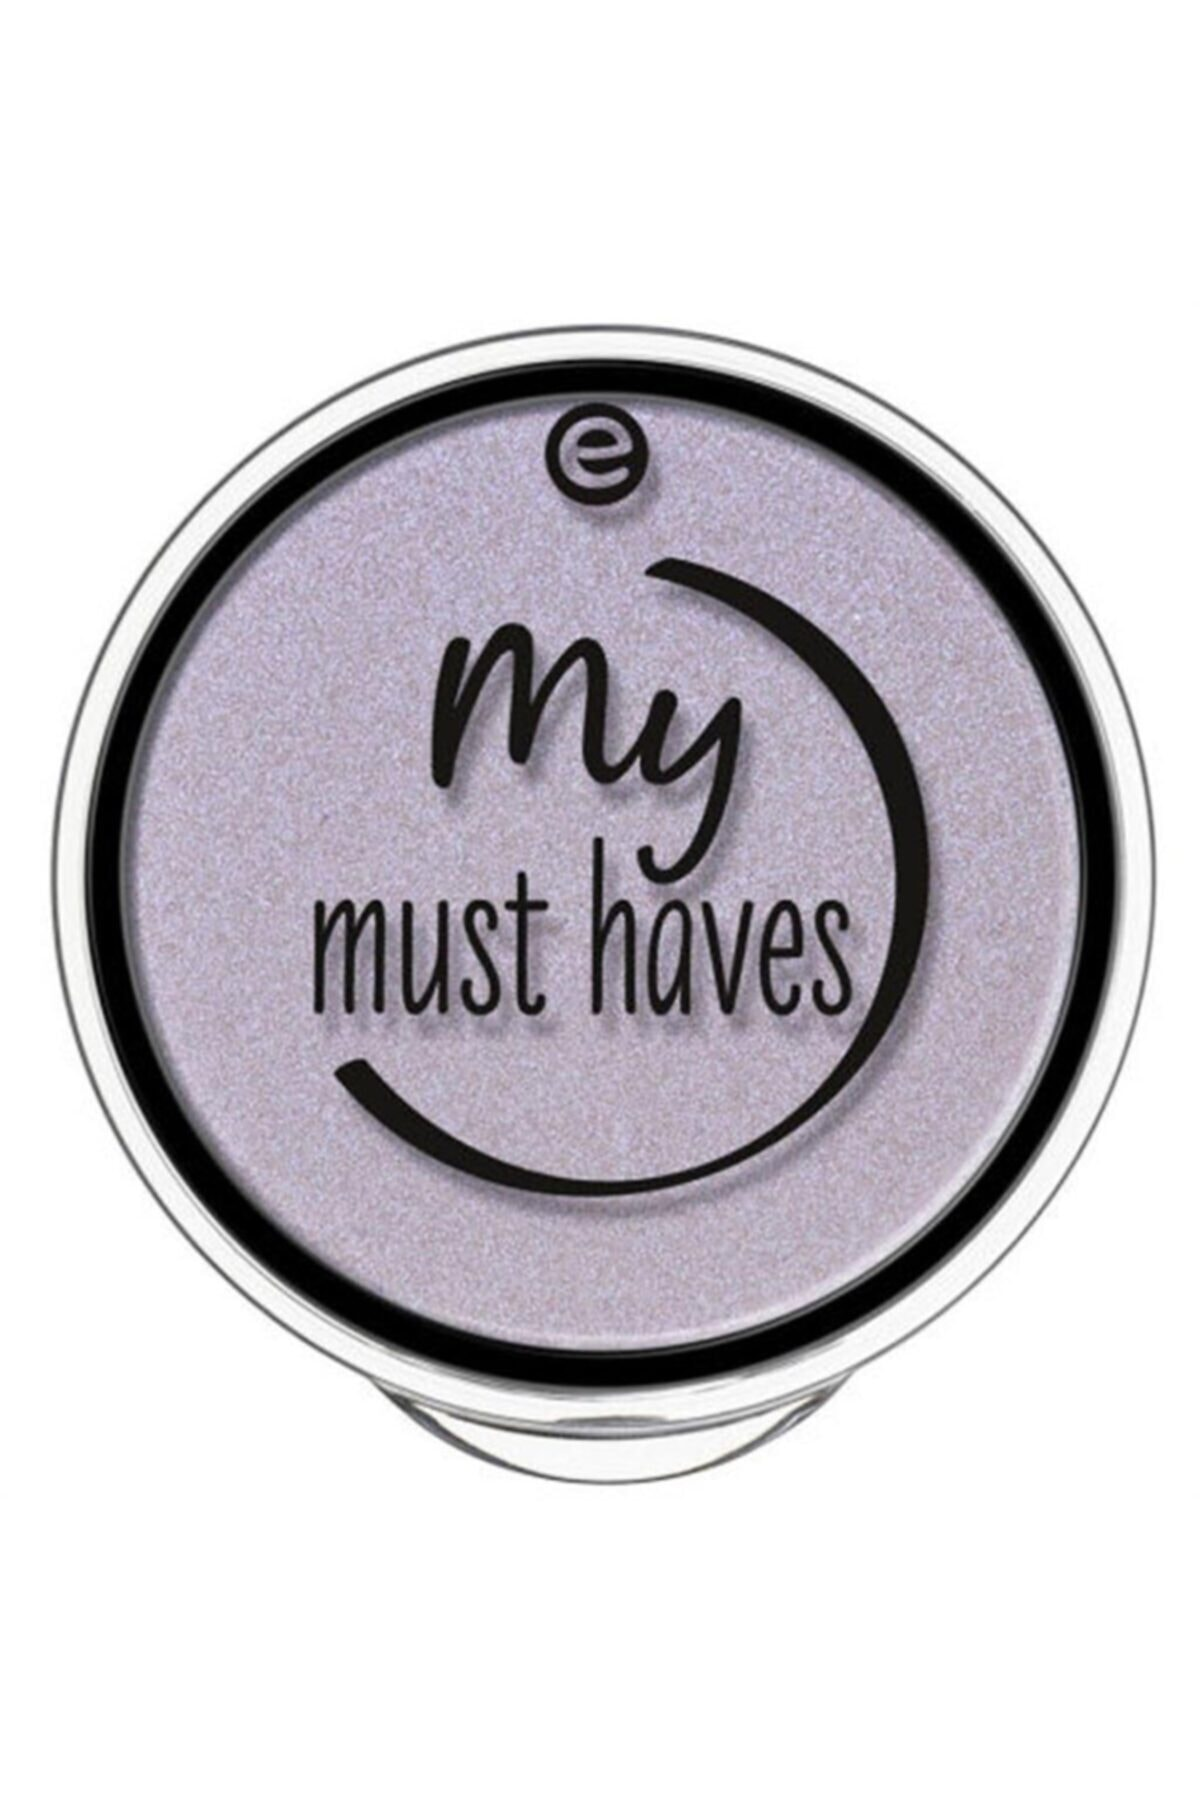 Essence Toz Pudra - My Must Haves Holo Powder 3 2 g 1